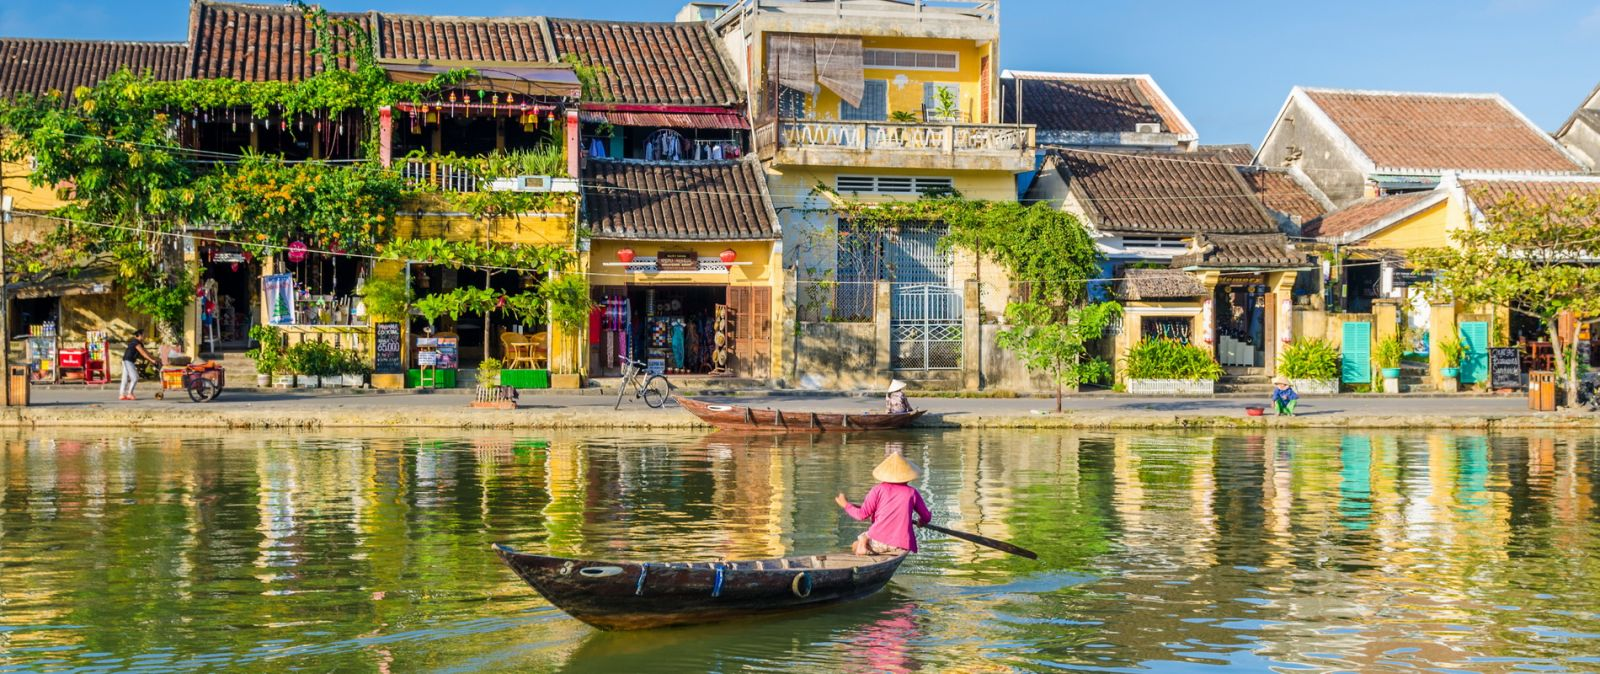 HOI AN ANCIENT TOWN ON THE WORLD'S TOP 15 CITIES